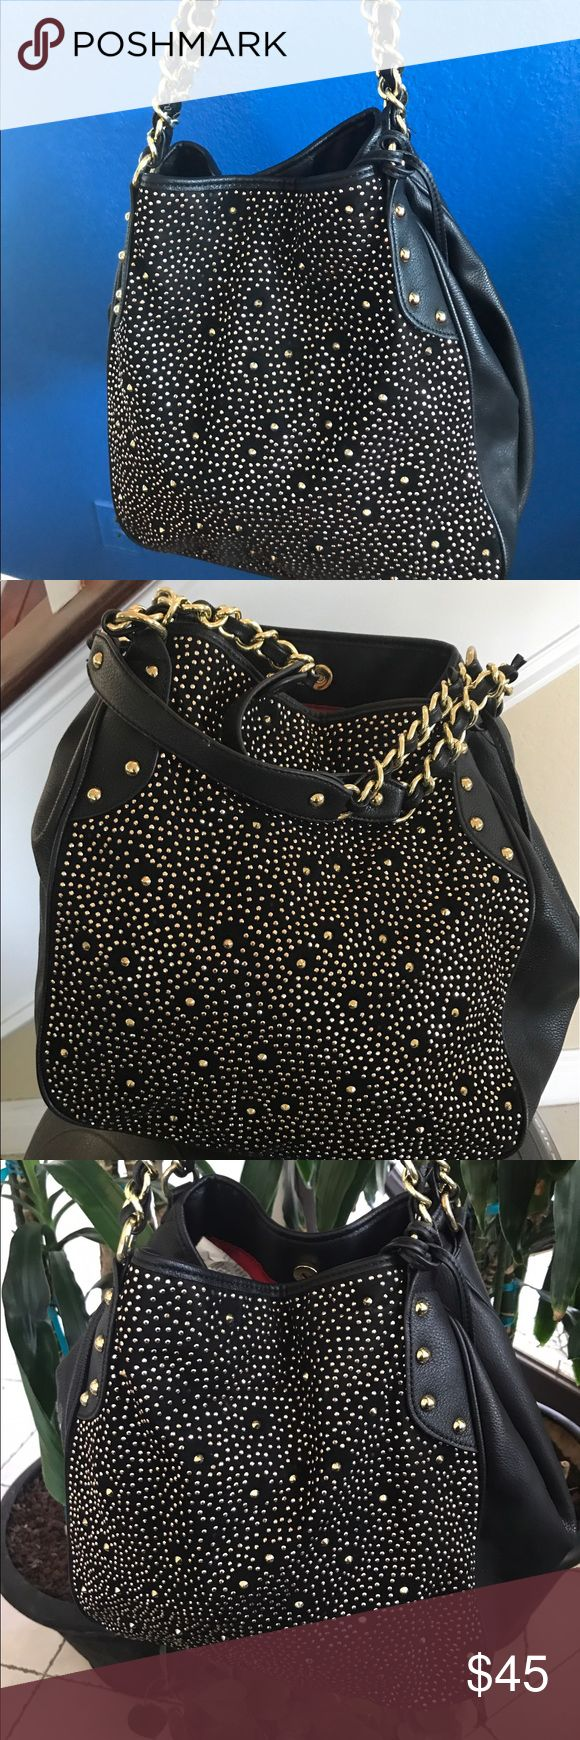 Carlos Santana Handbag. Shoulder Bag Beautiful Black and Gold Handbag Shoulder Bag  Bling Bag Red interior  Gold straps chain straps  Lager Bag  Excellent condition Thank you for visiting my shop  Please  check my other items. Carlos Santana Bags Shoulder Bags